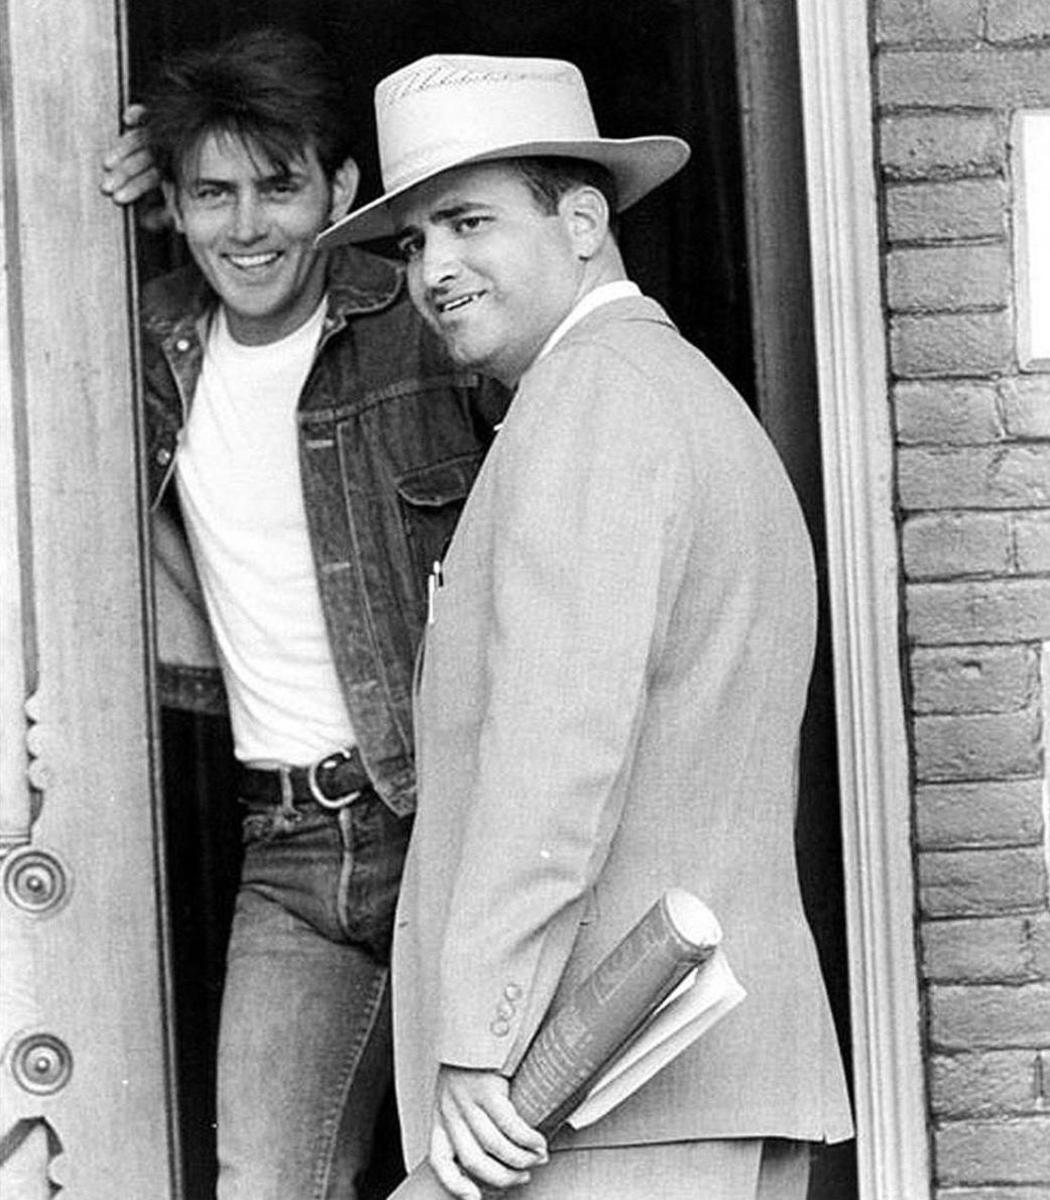 Terrence Malick and Martin Sheen in Badlands (1973)